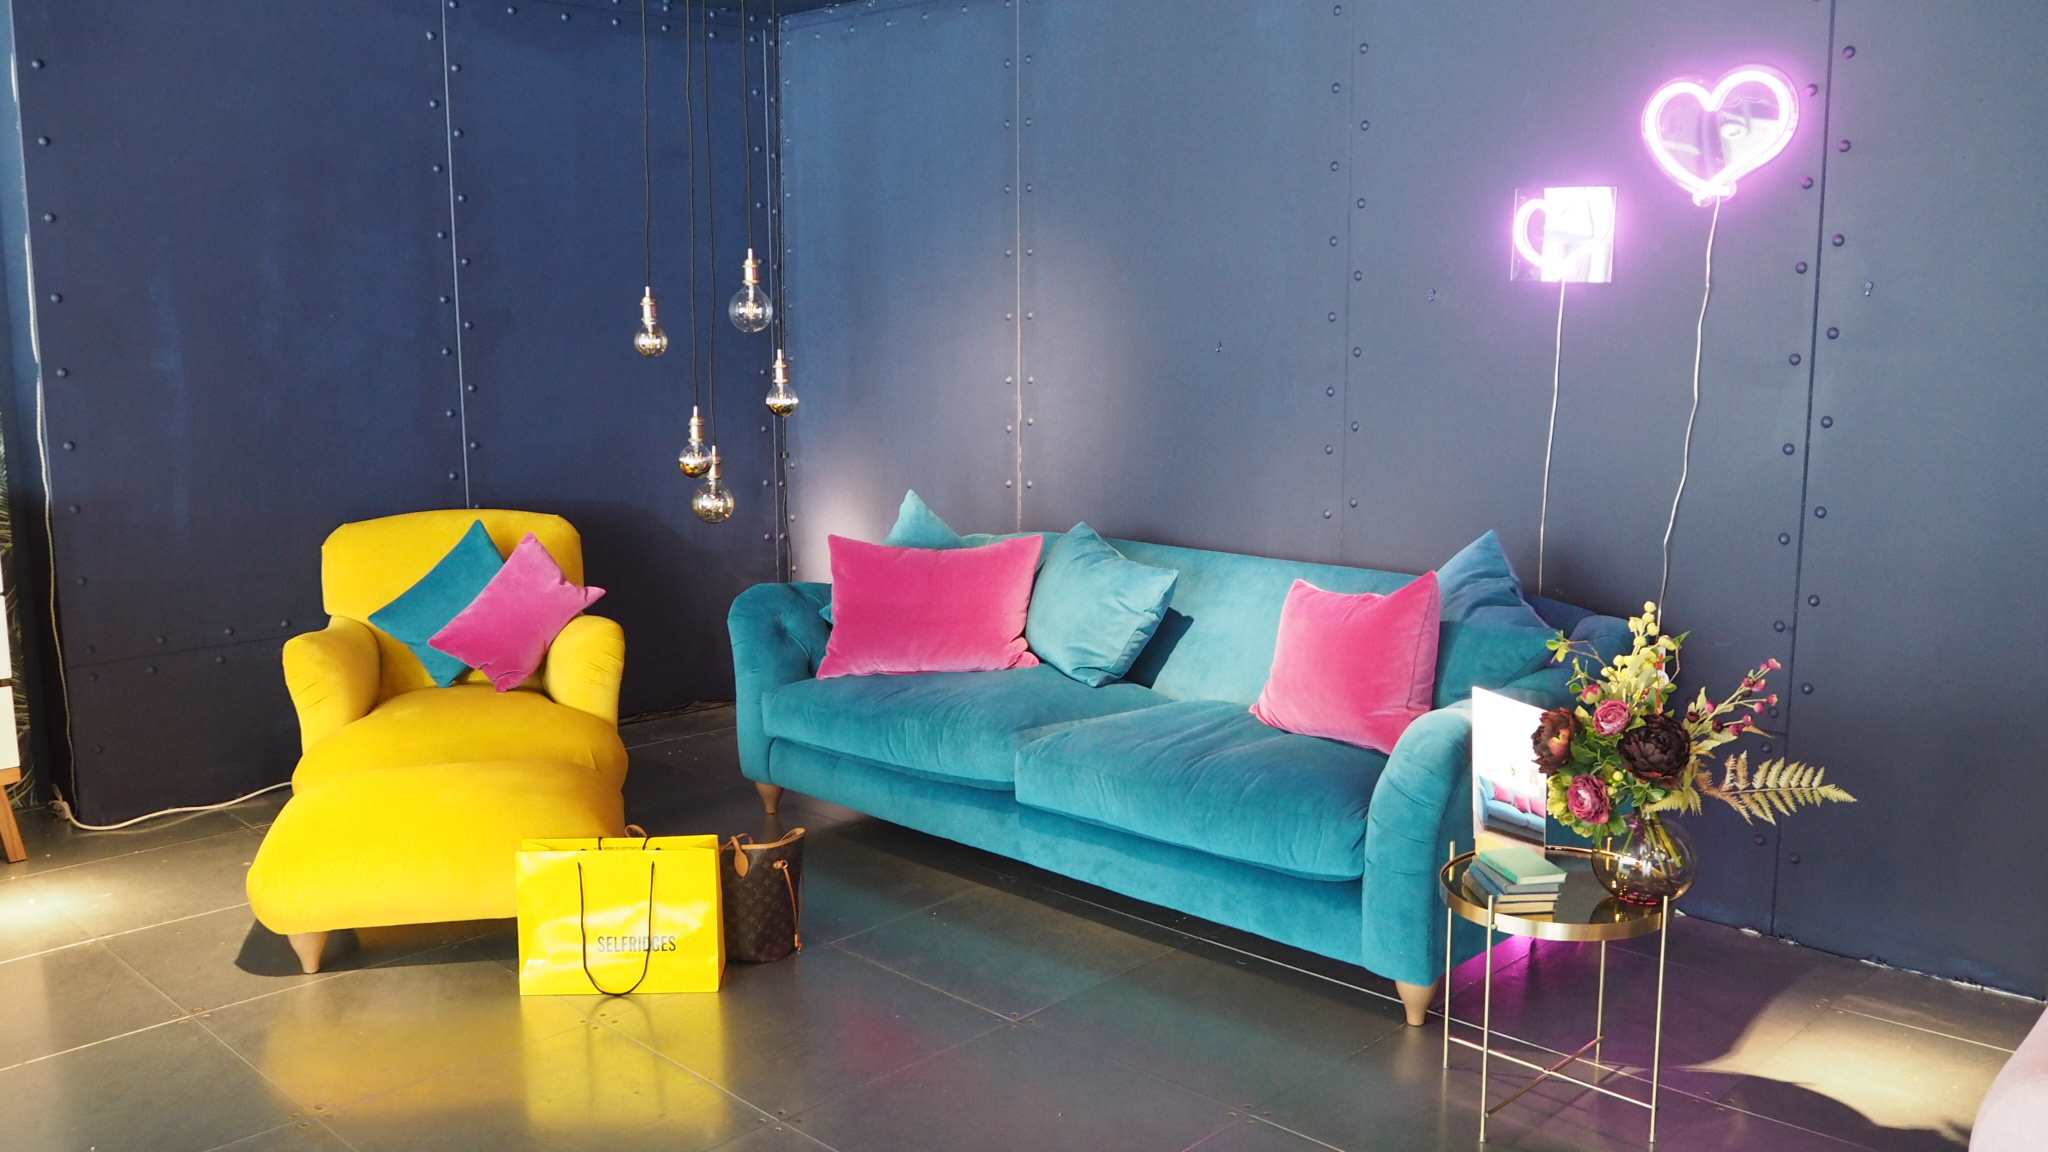 dfs sofas that come apart small double foam sofa bed matchmade designing our new ginger mum